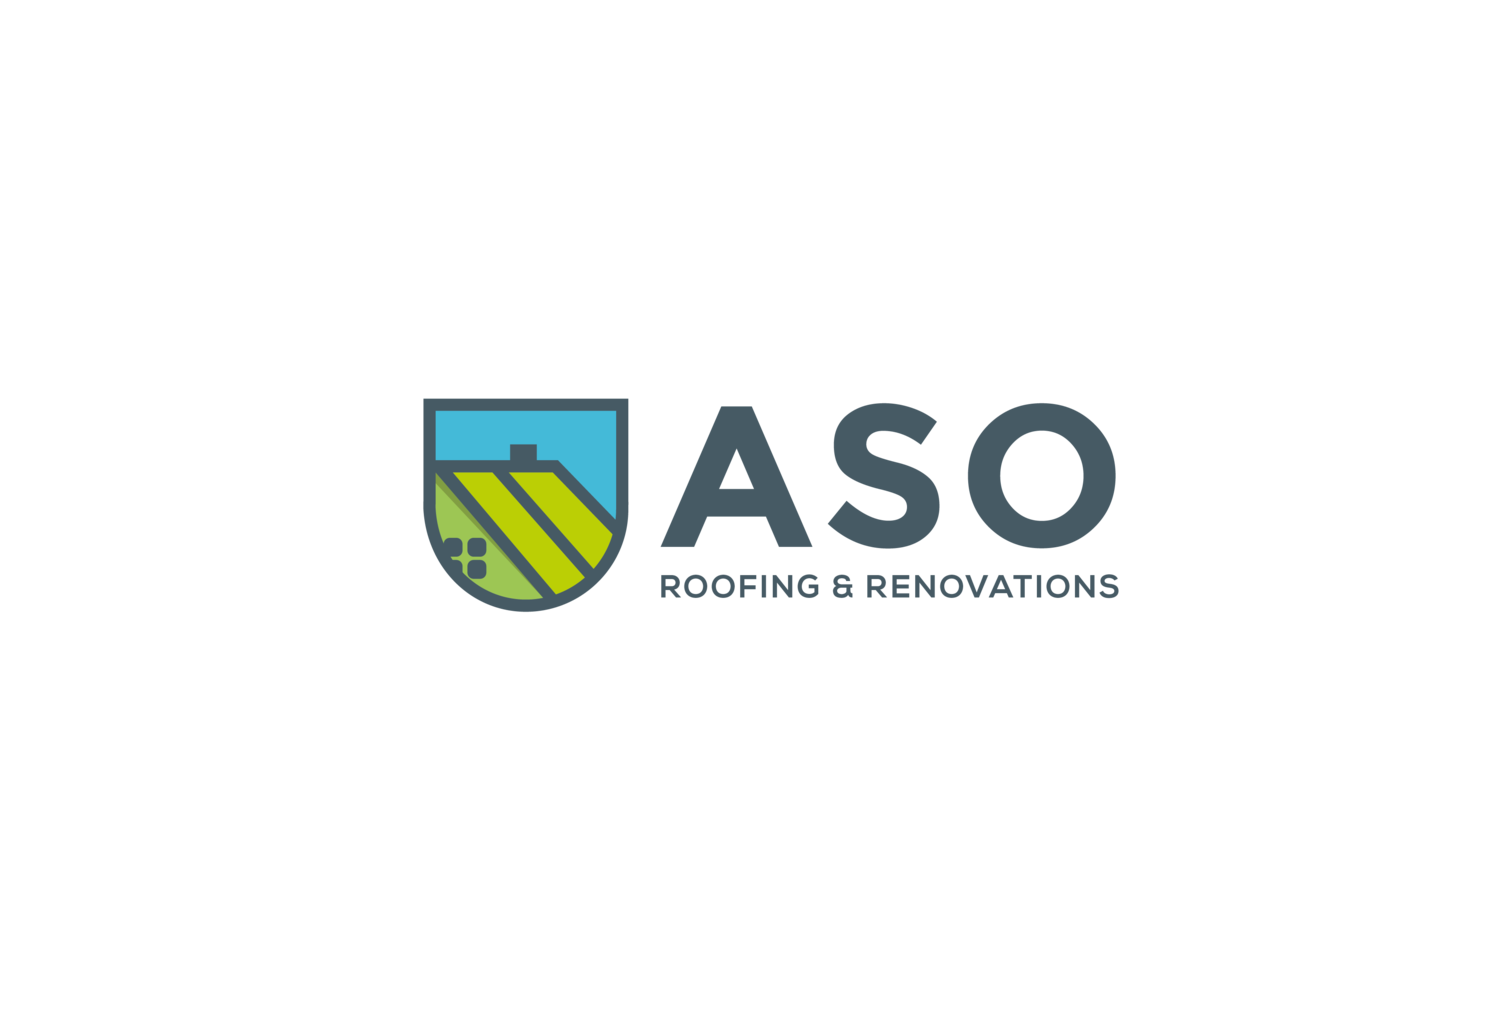 ASO Roofing & Renovations - Sugar Land Roofing Company - Roofing Contractor